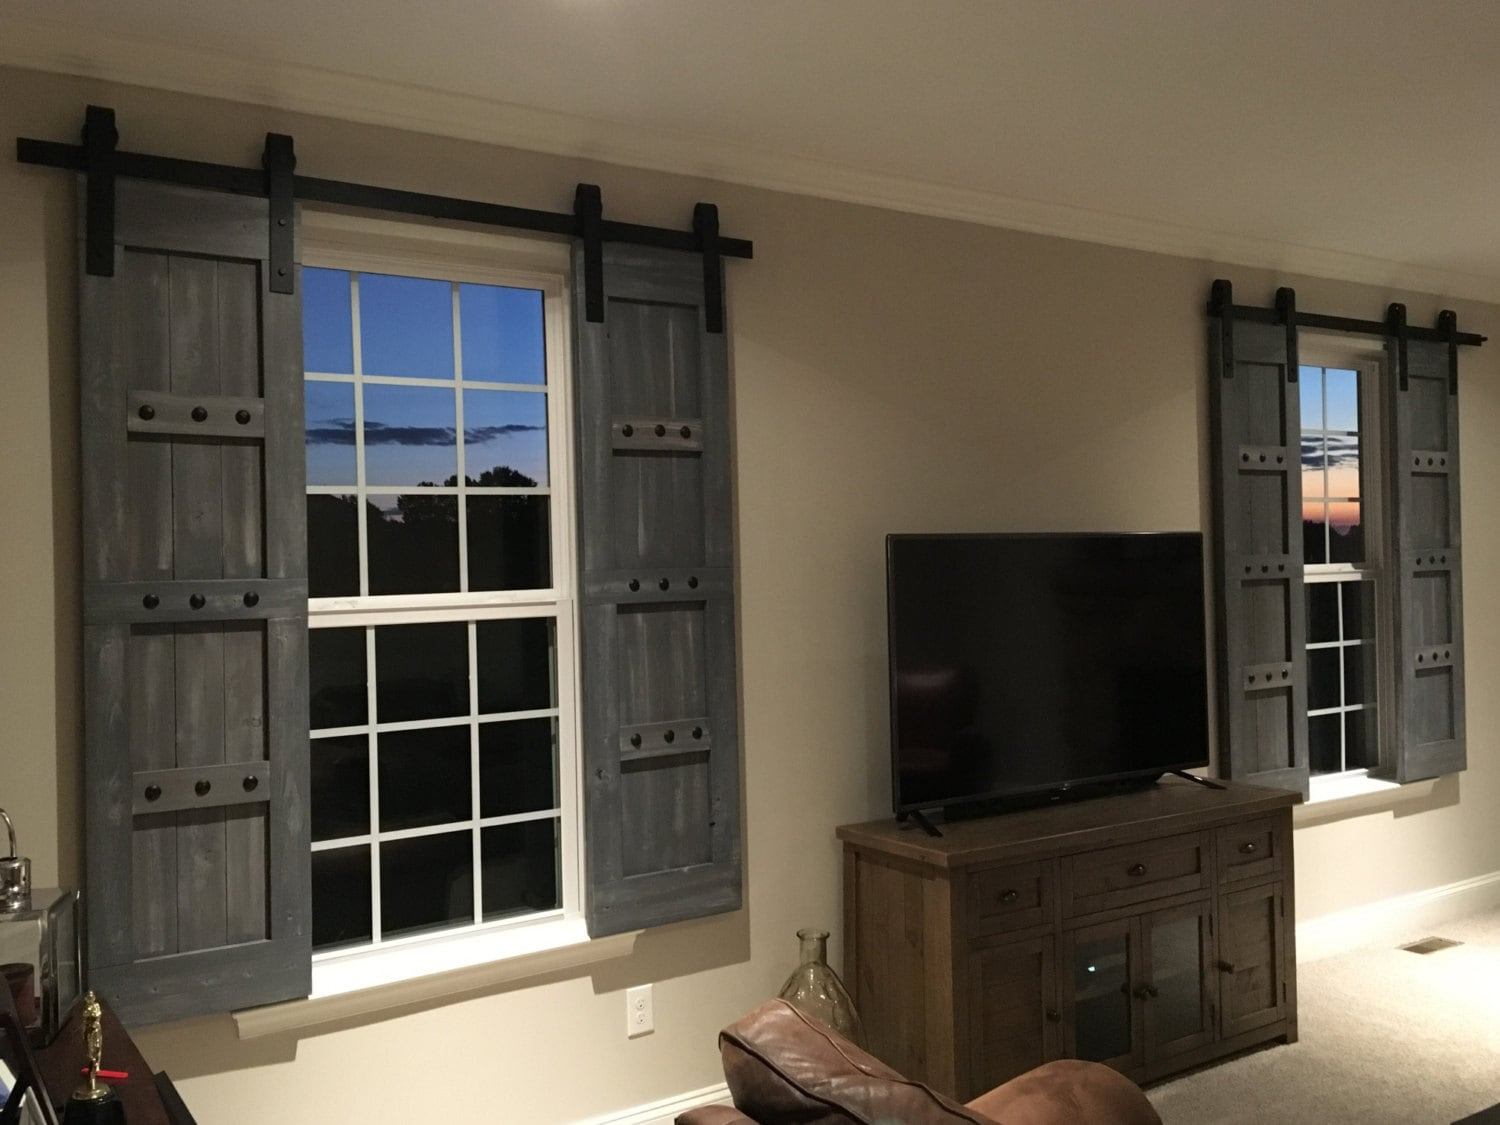 Interior Window Barn Shutters - Sliding Shutters - Barn Door Shutter ...